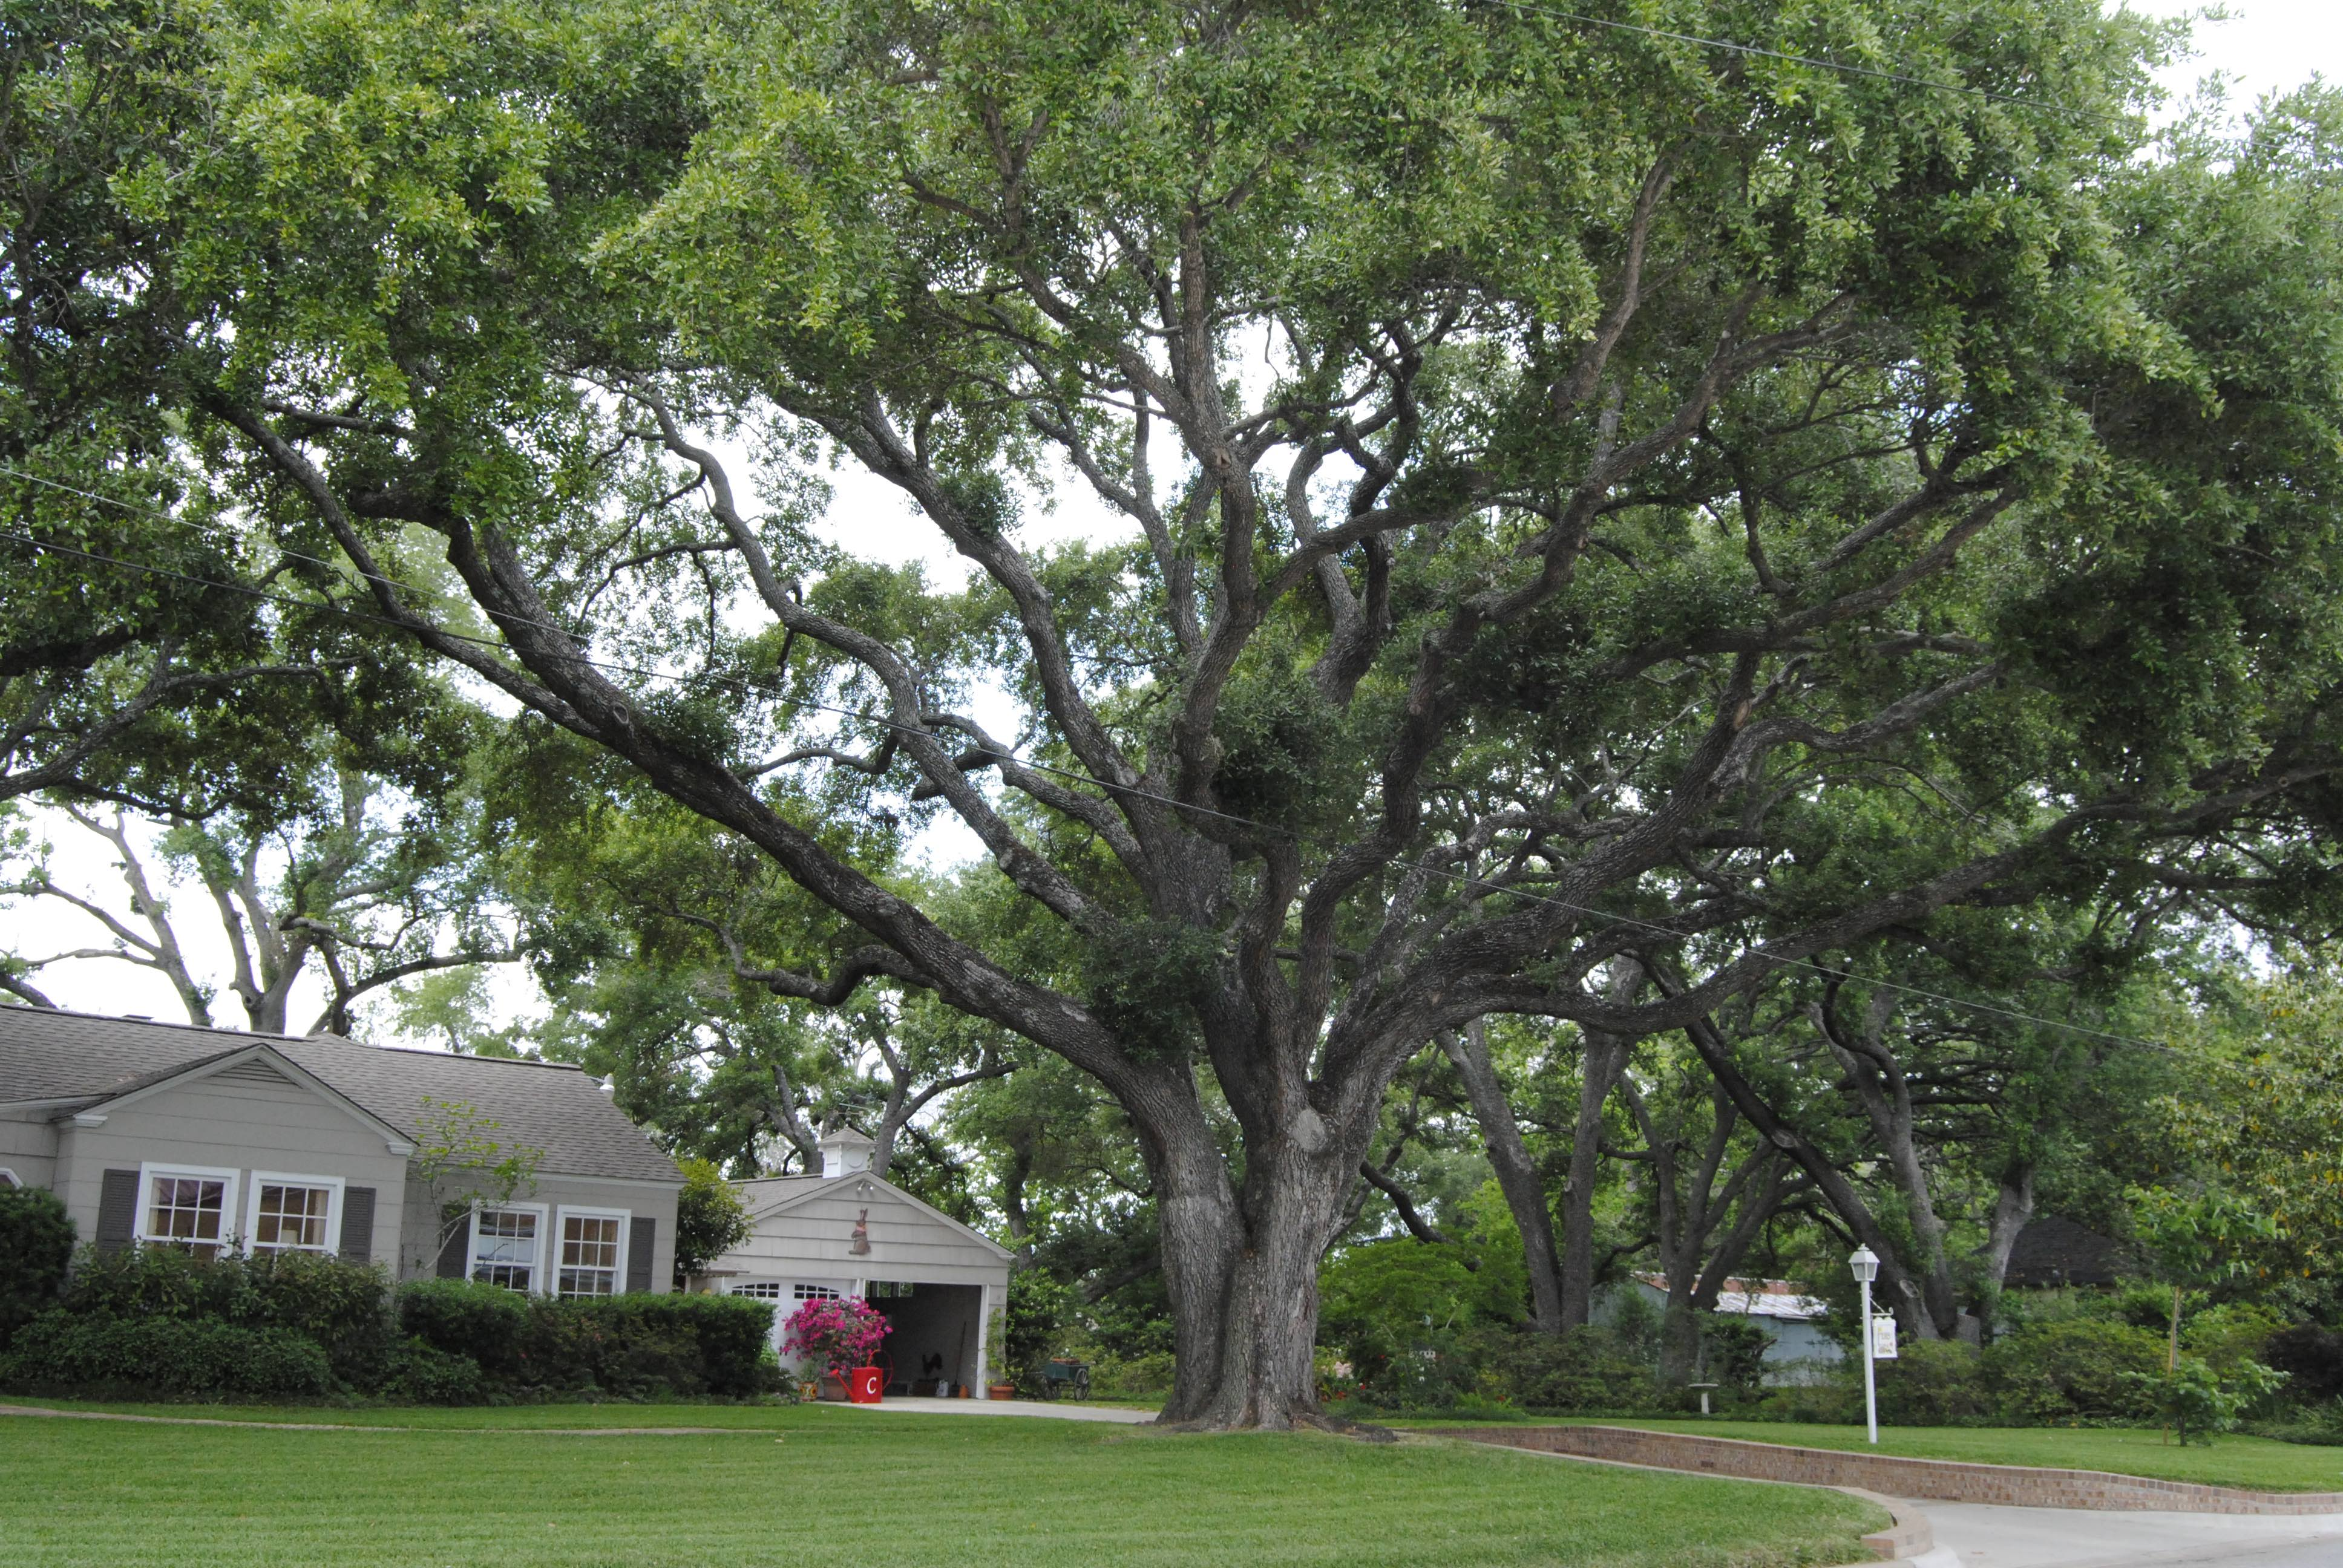 10.	Stand of Live Oaks